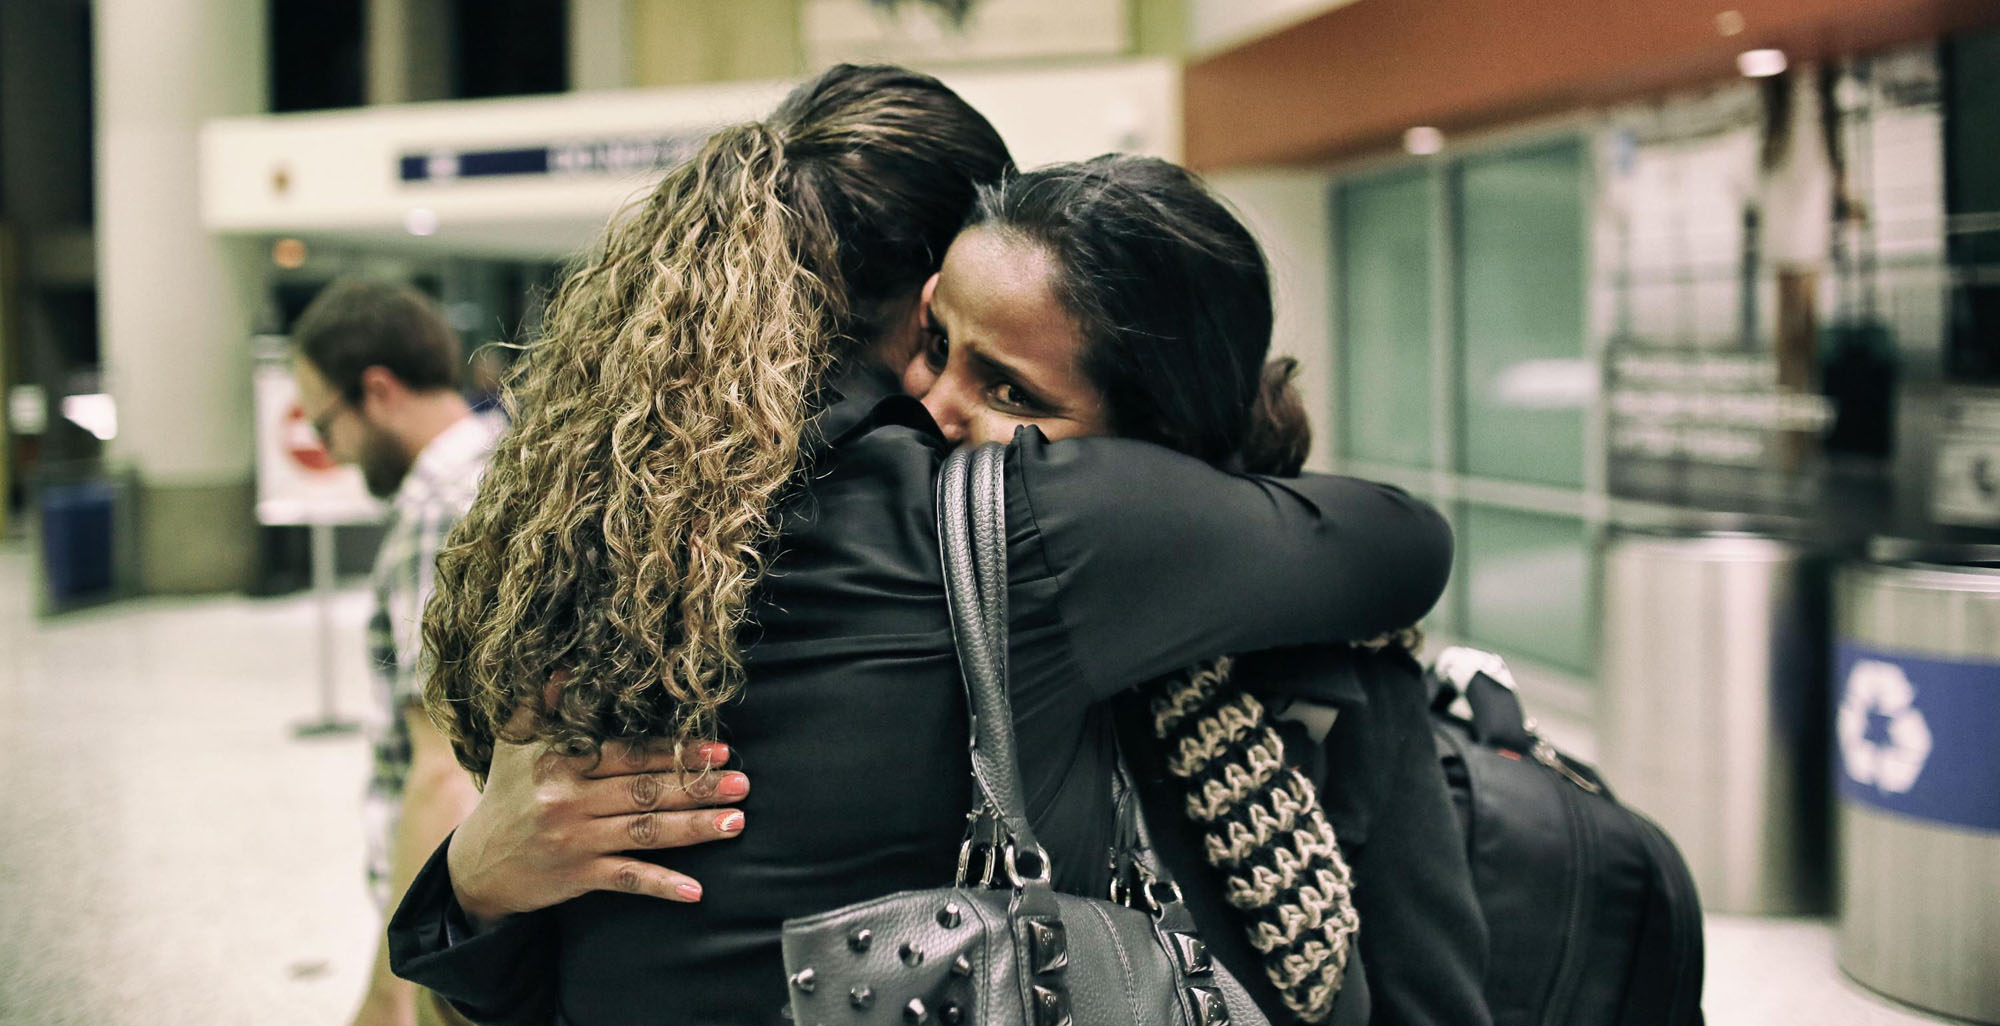 Yosan Tesfay is greeted by Cathy Burdge from the International Rescue Committee after arriving from Eritrea at Phoenix Sky Harbor International Airport in Phoenix, Arizona on Wednesday, February 1 2017.(Photo by Sandy Huffaker for The Wall Street Journal) LASTREFUGEES_AZ 47078 Published Credit: Sandy Huffaker for The Wall Street Journal Published Credit: Sandy Huffaker for The Wall Street Journal